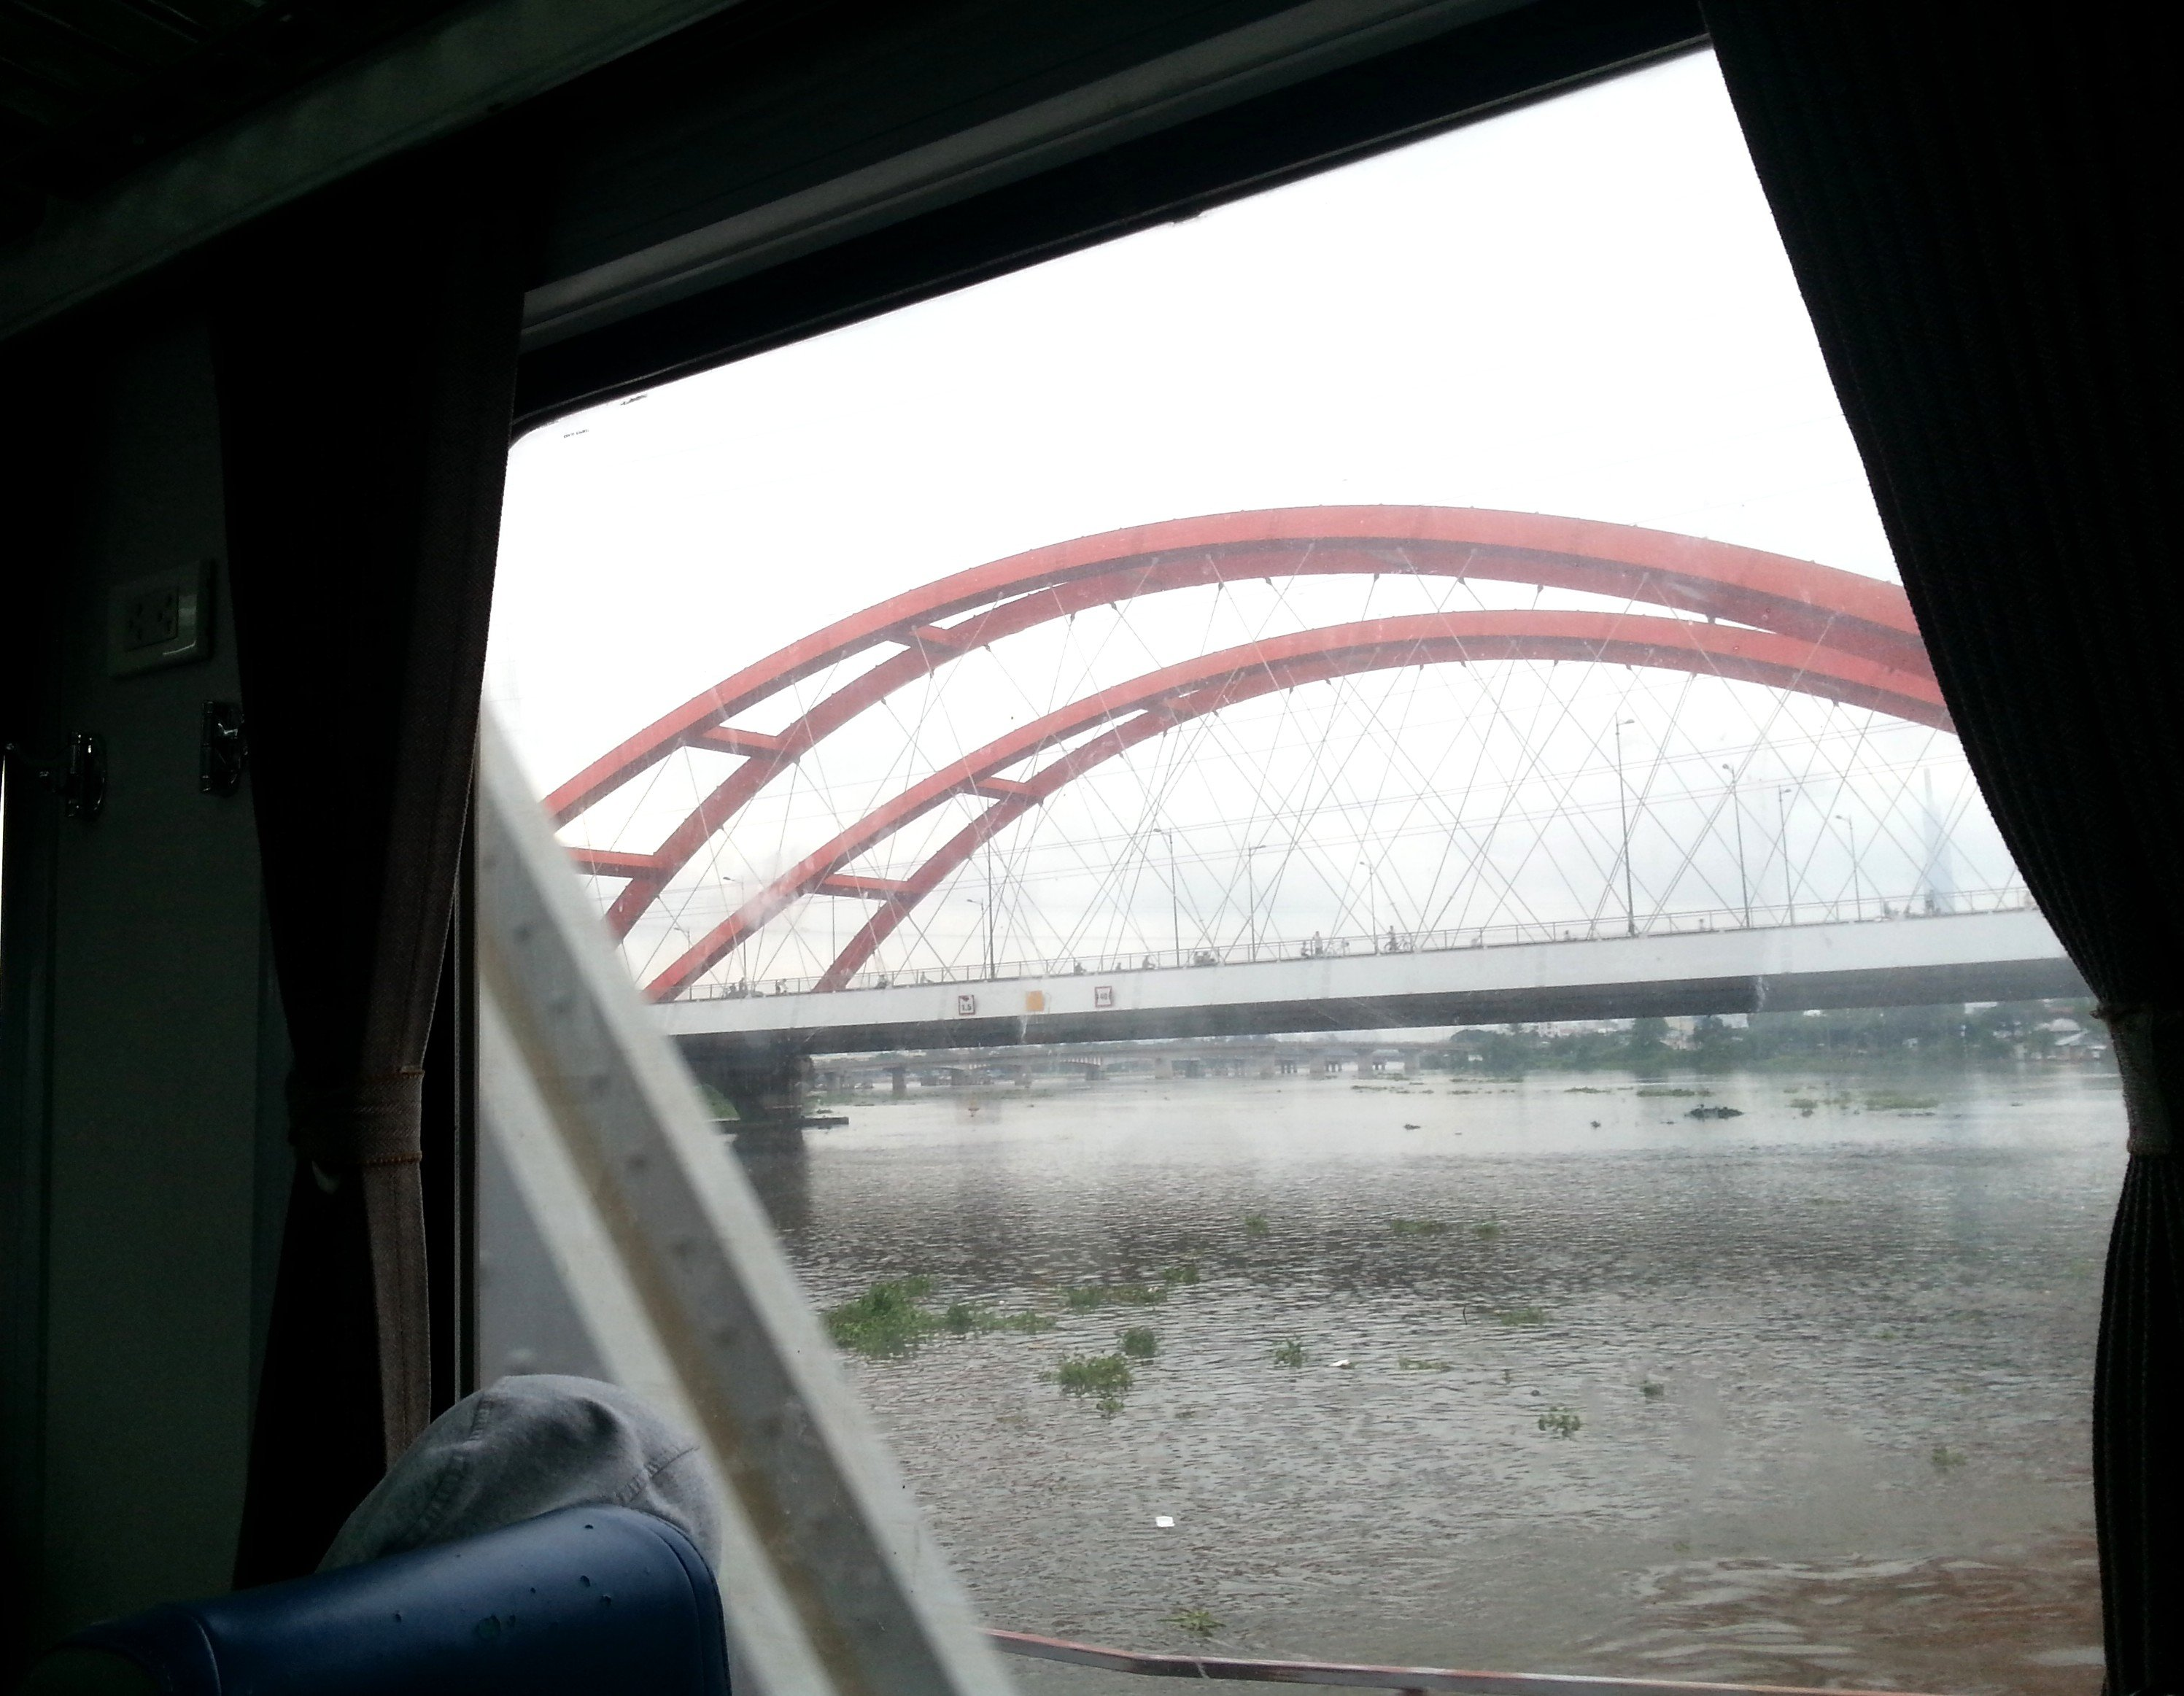 Bin Loi Bridge in Ho Chi Minh City